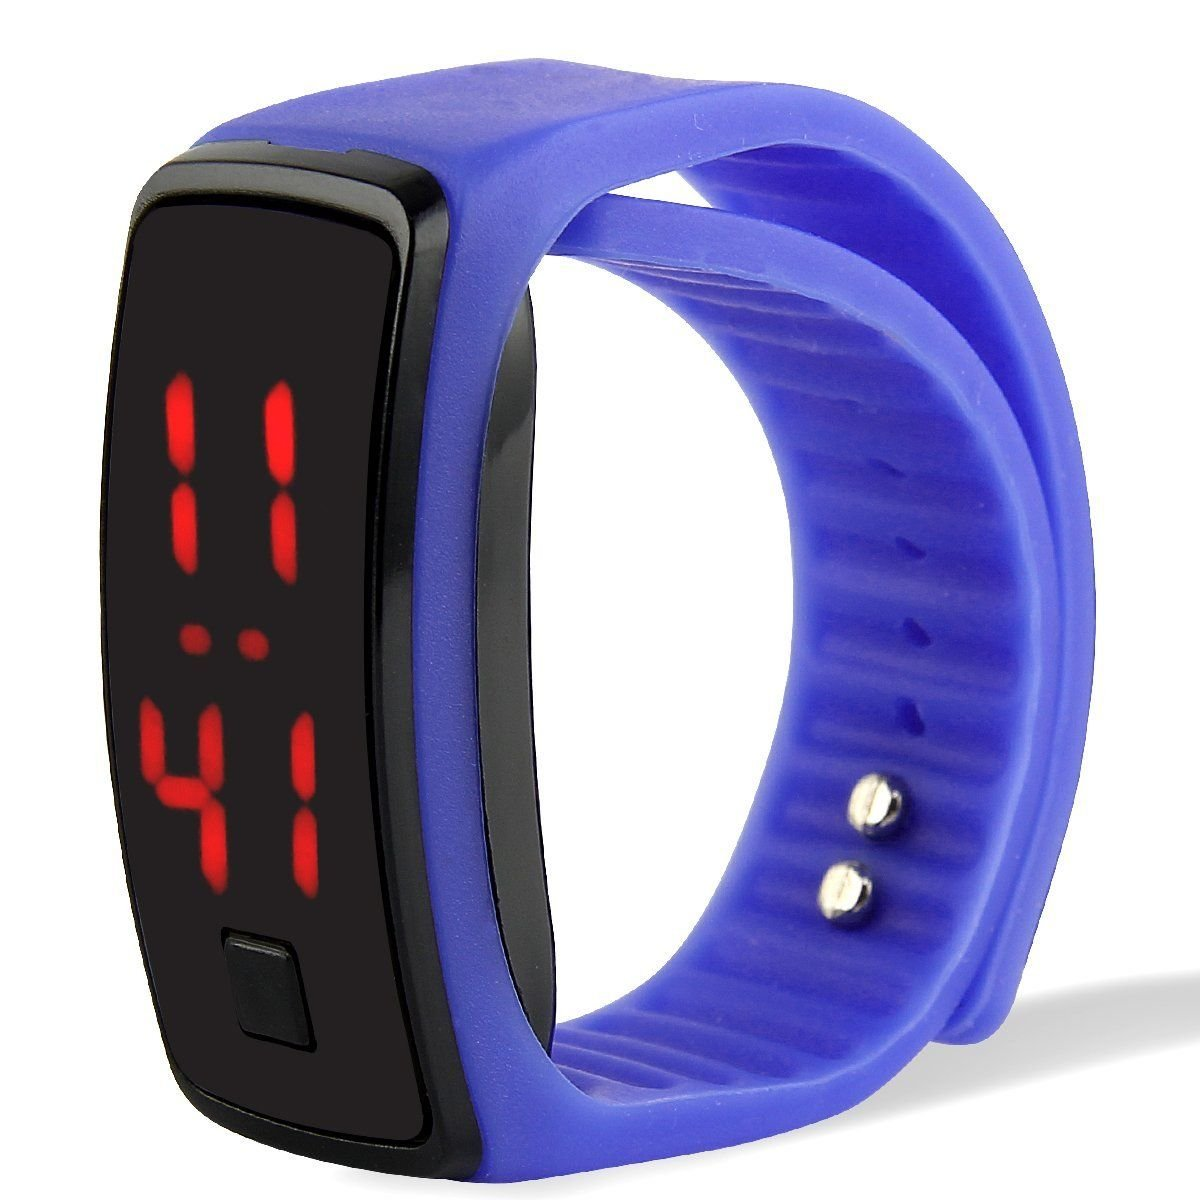 Popsport Striking Silicone LED Sport Bracelet Touch Digital Wrist Watch (Blue) by Popsport (Image #1)